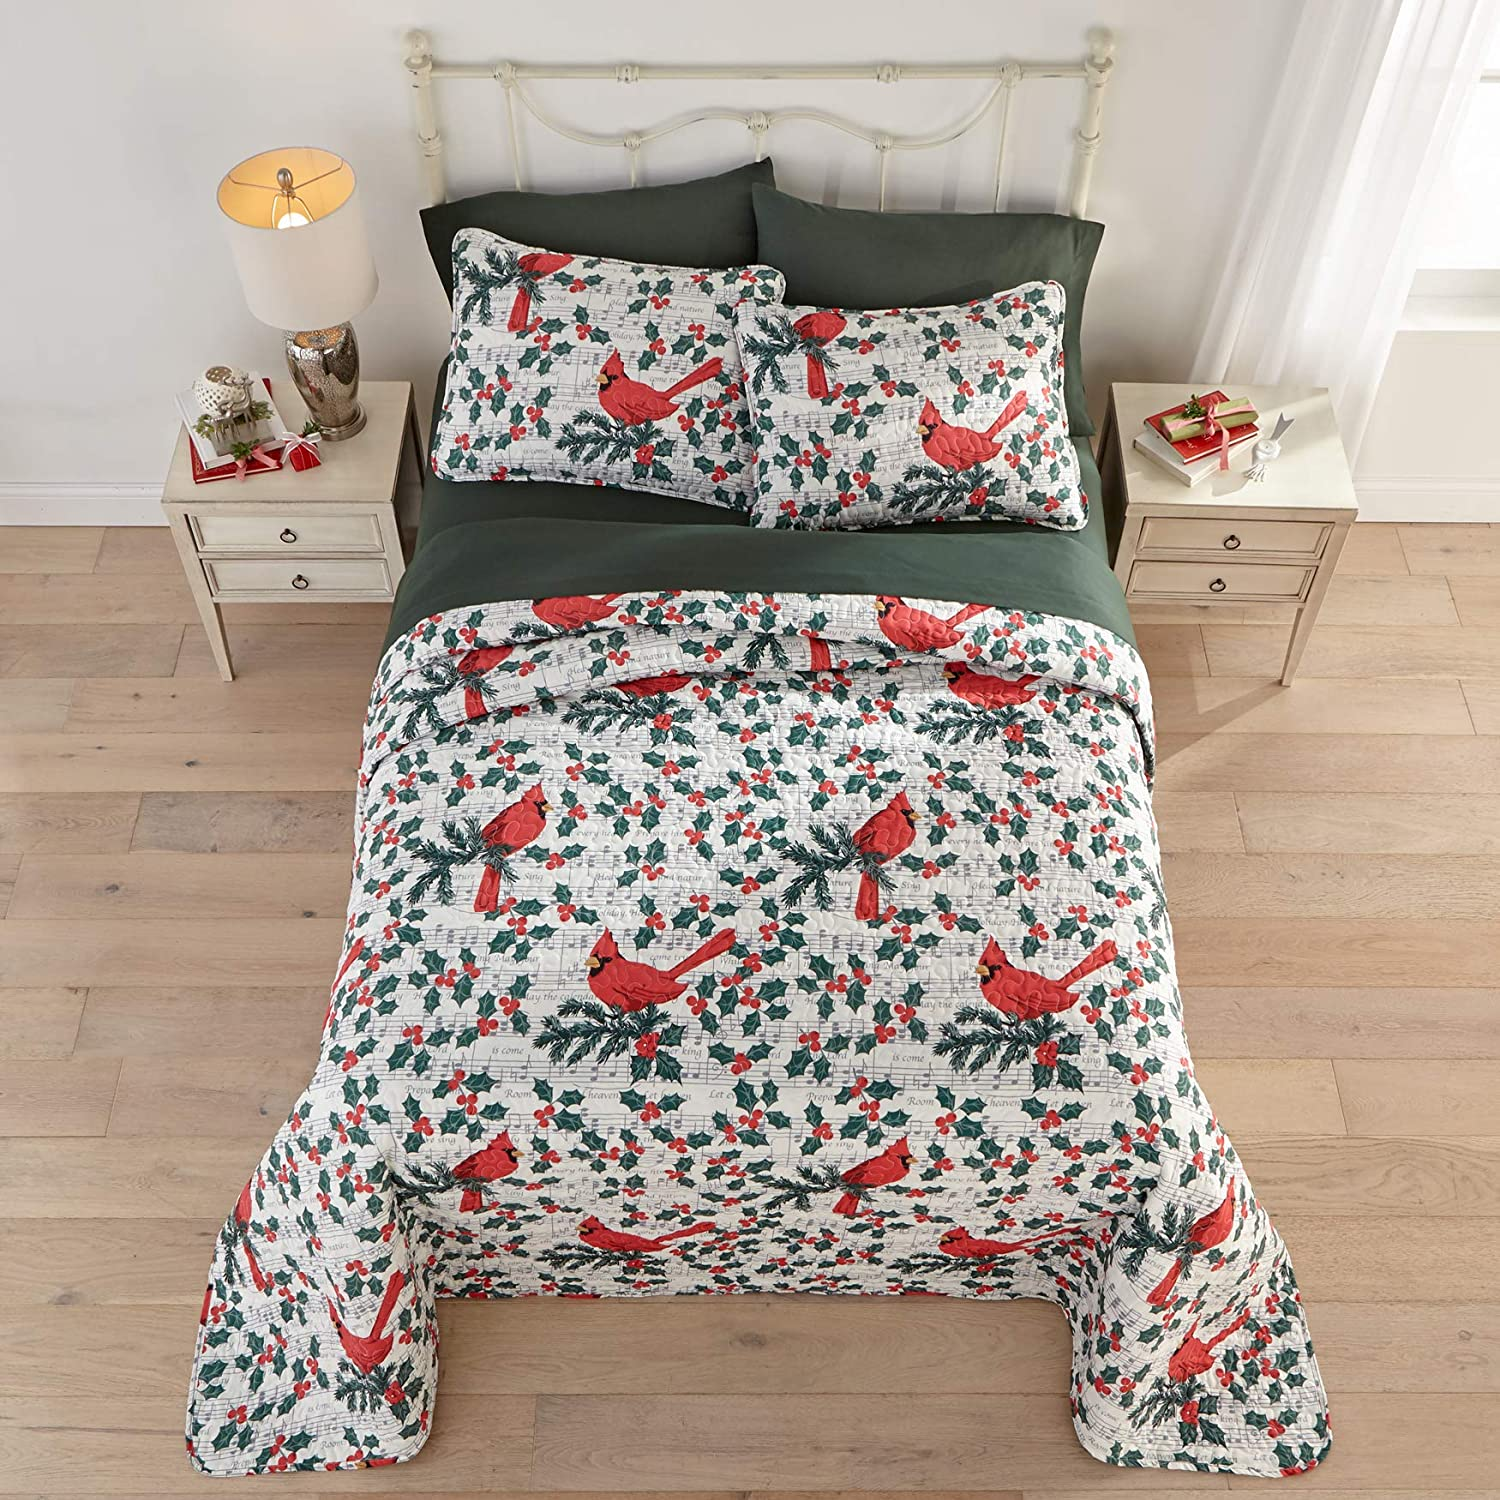 BrylaneHome 3 Piece Christmas Bedspread Set Reversible Quilted Cover & Pillow Shams - Twin, Cardinal